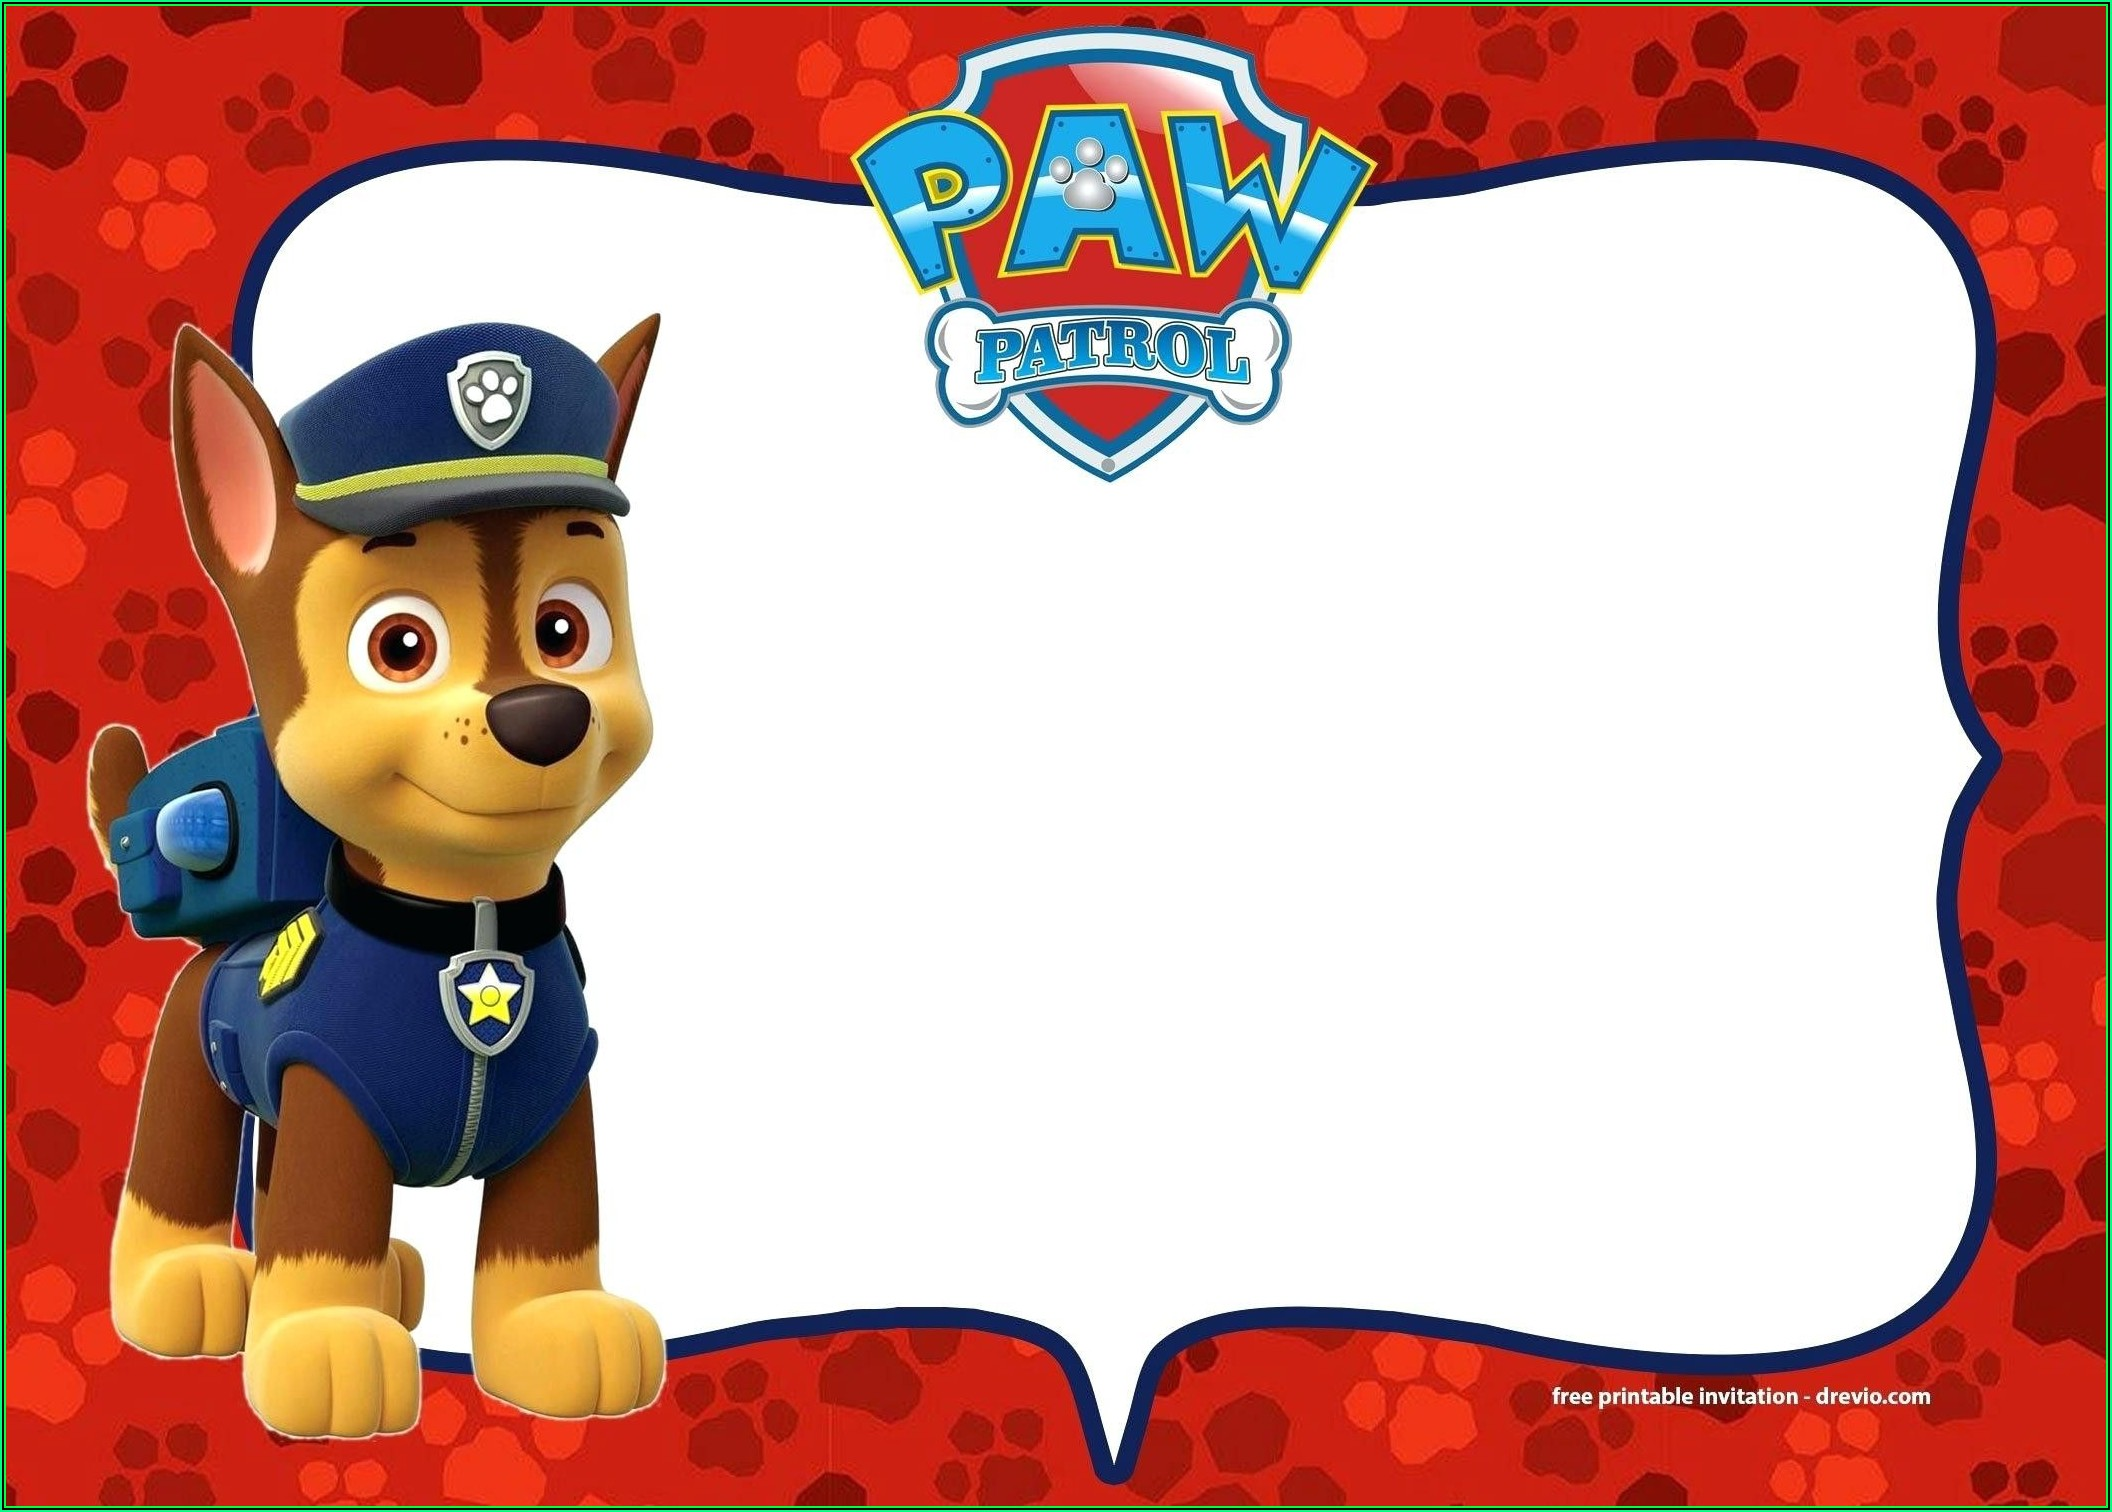 Paw Patrol Birthday Party Invitation Template Free